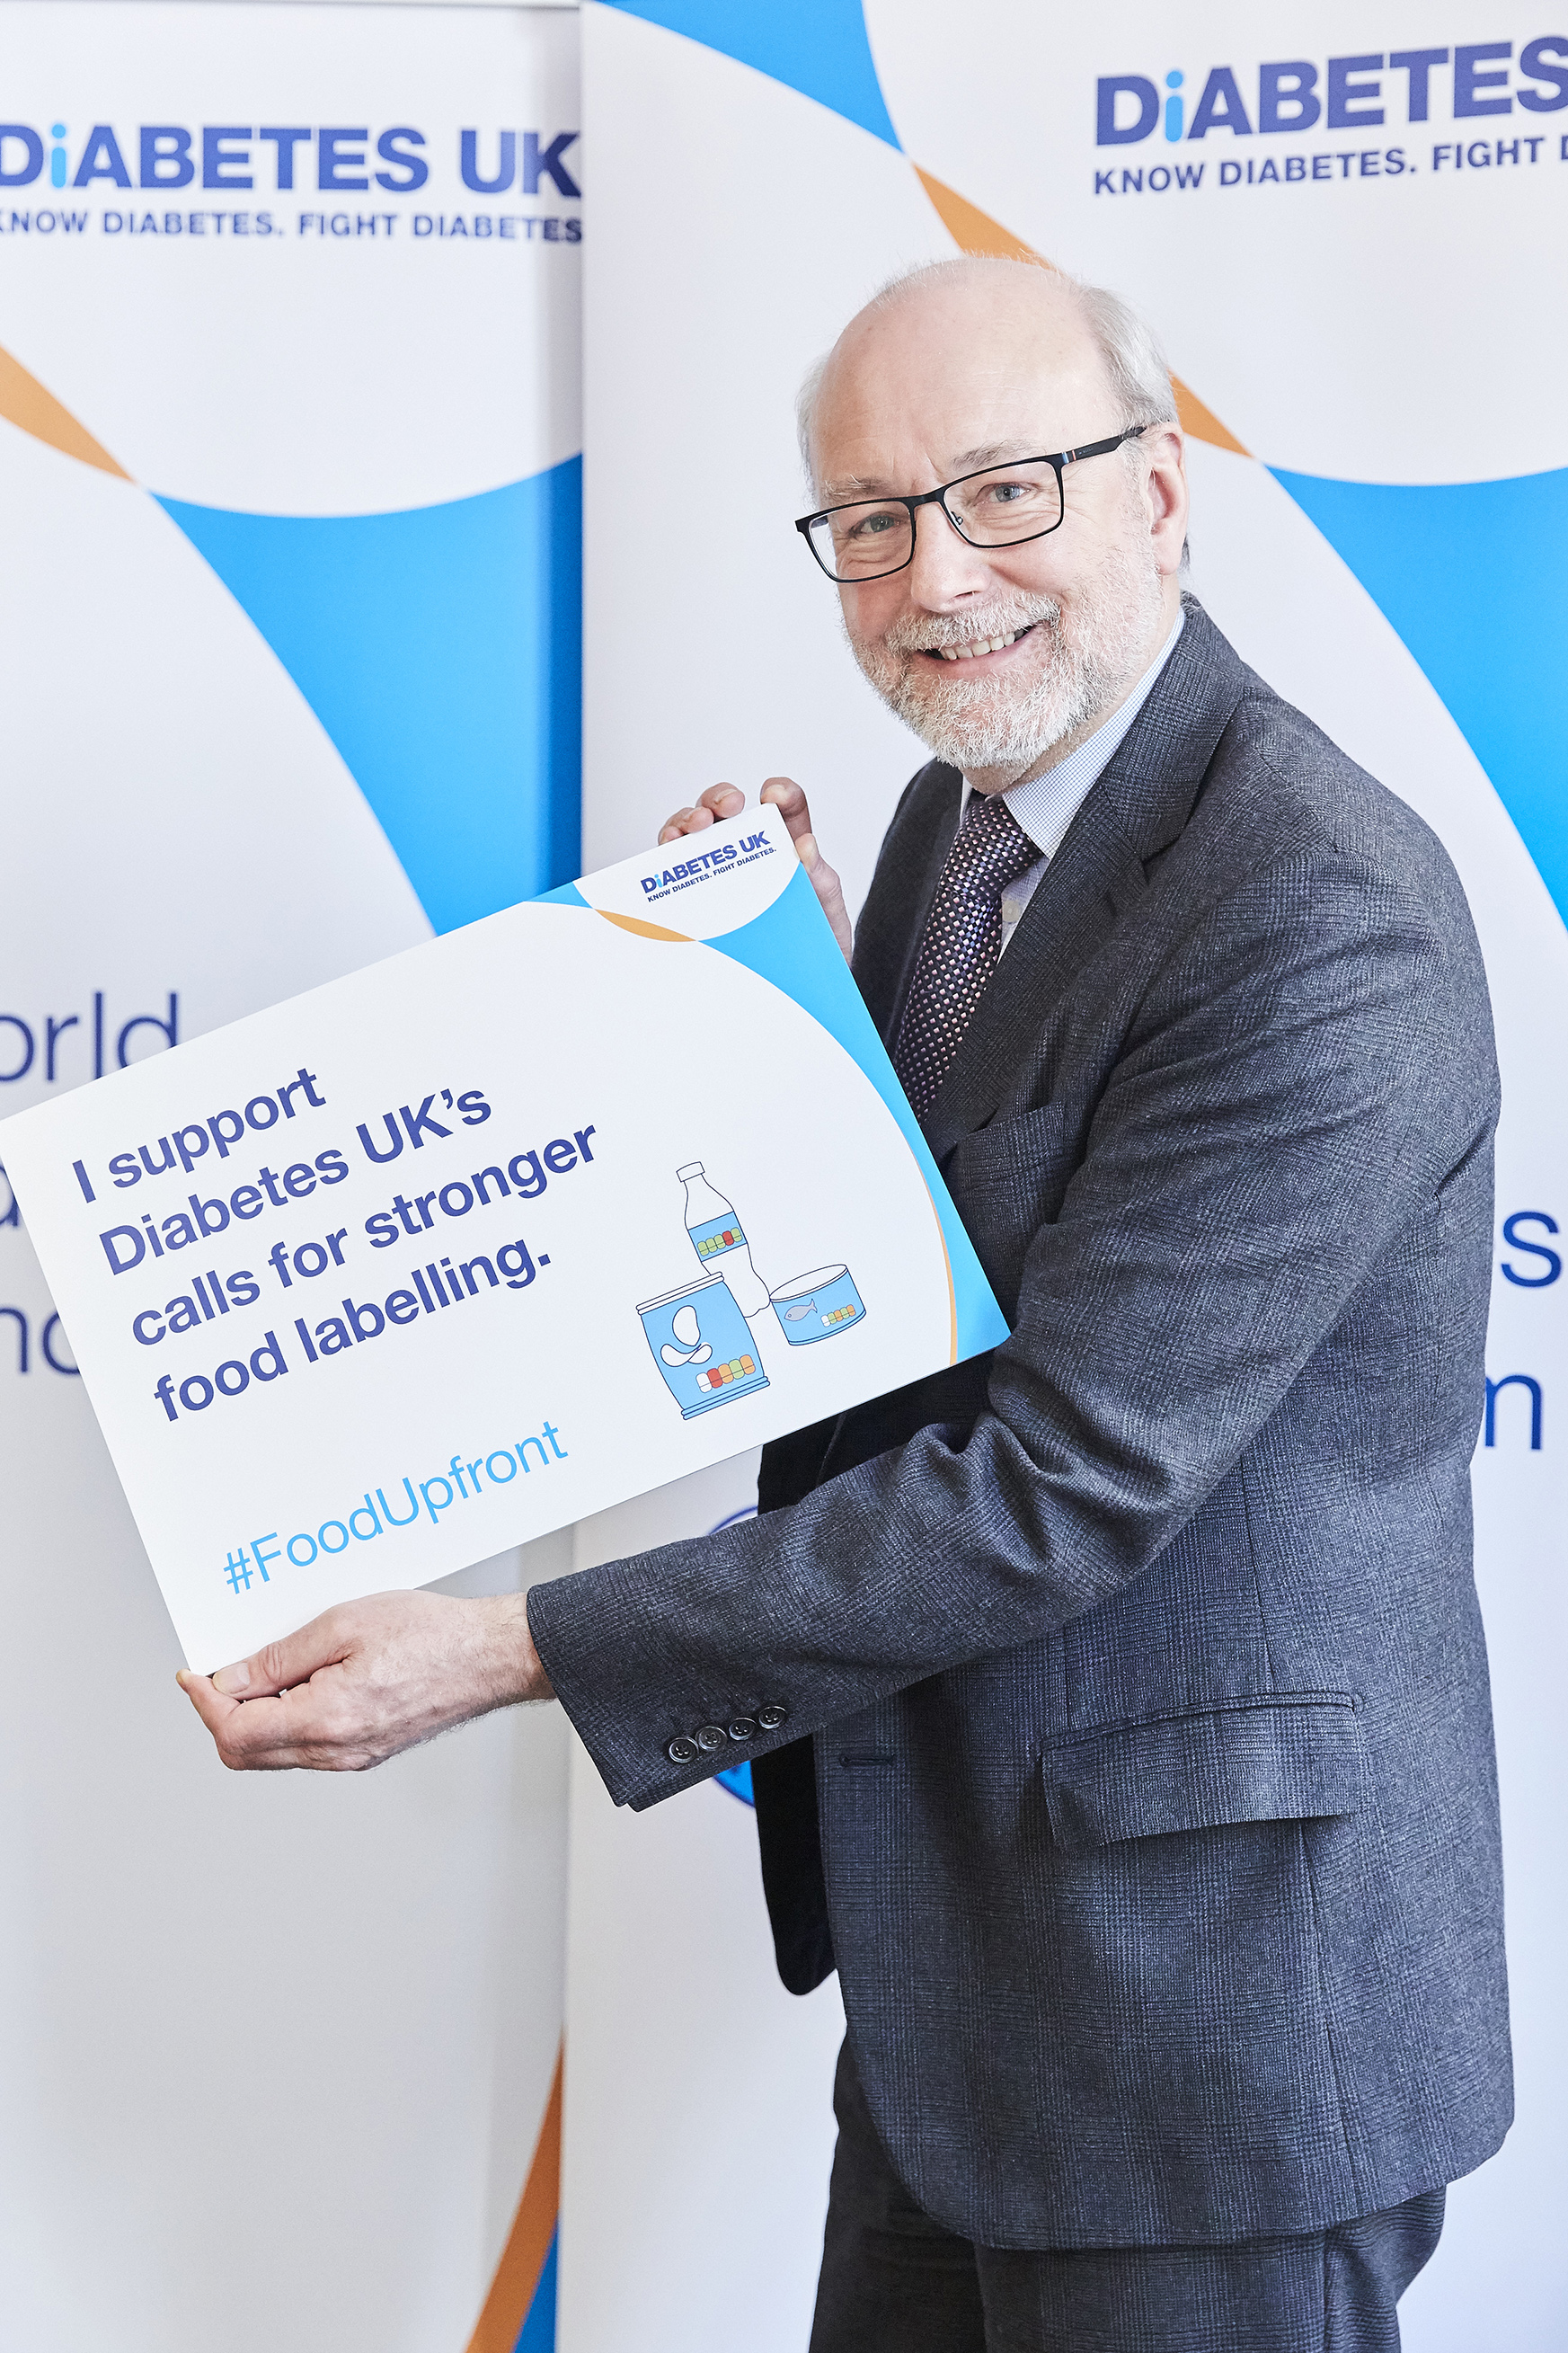 Alex pledges support for food labelling campaign